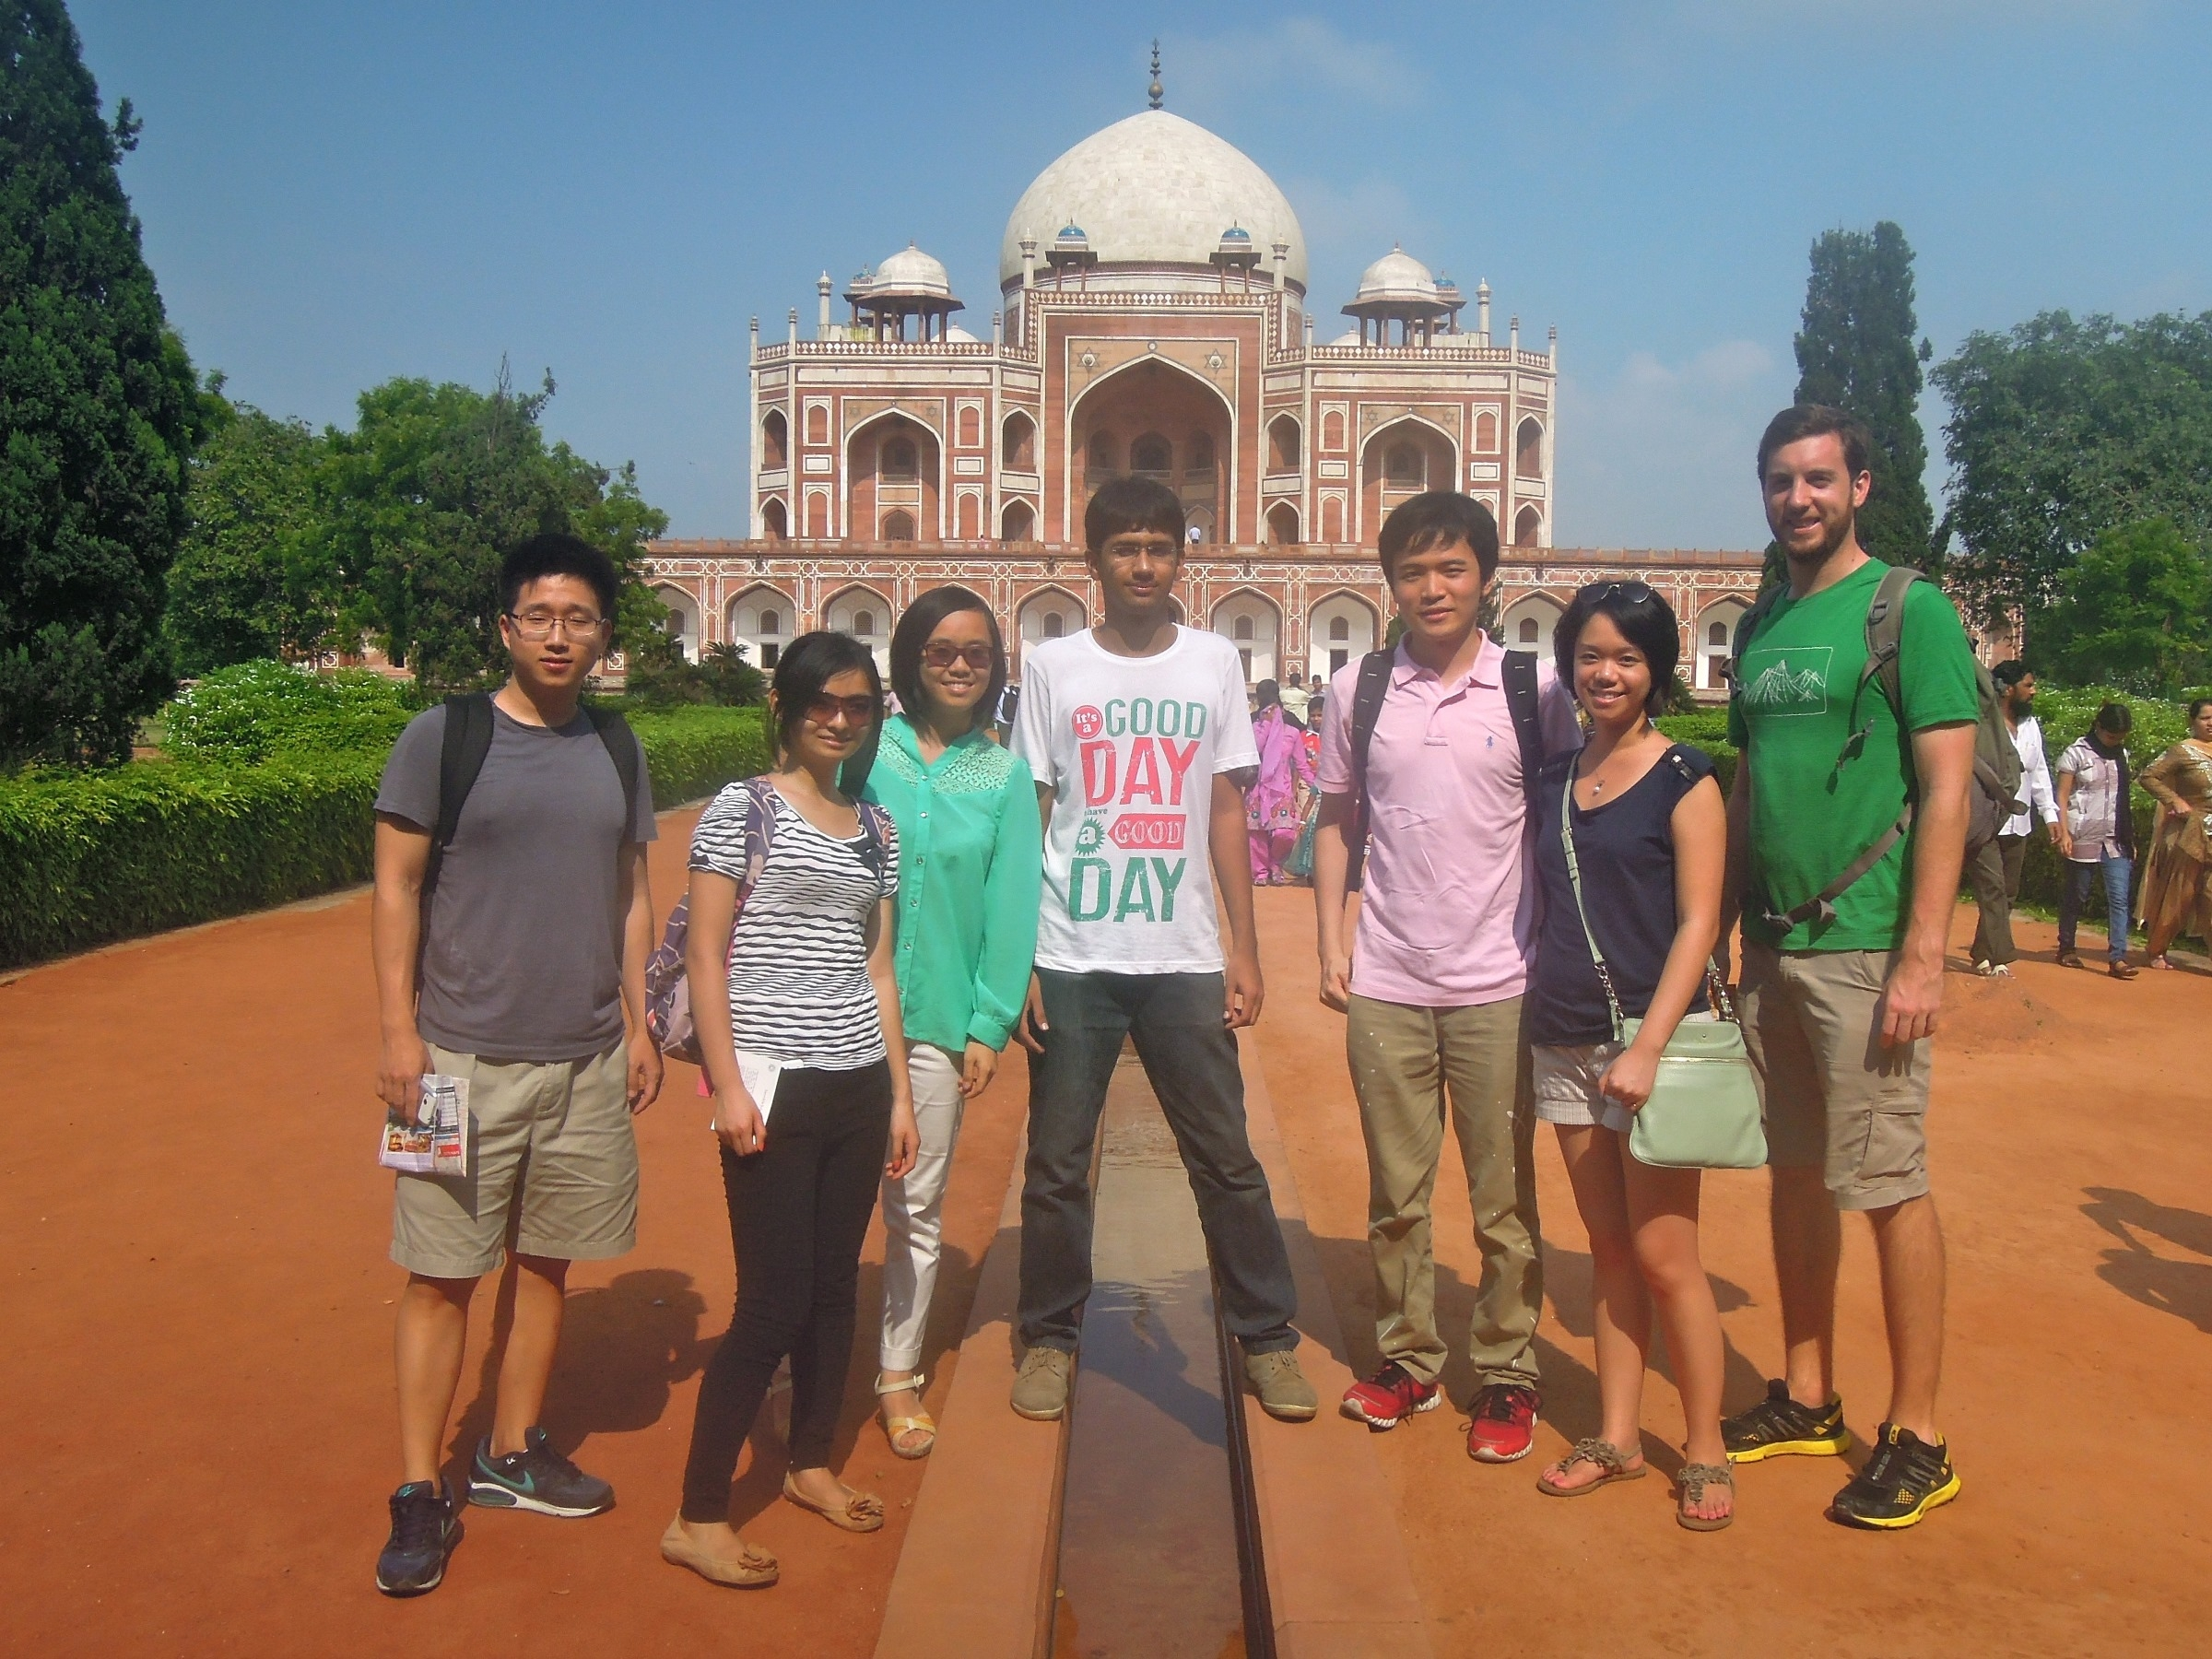 Li Weijia, Cindy (2nd left) visited the Humayun's tomb in New Dehli.